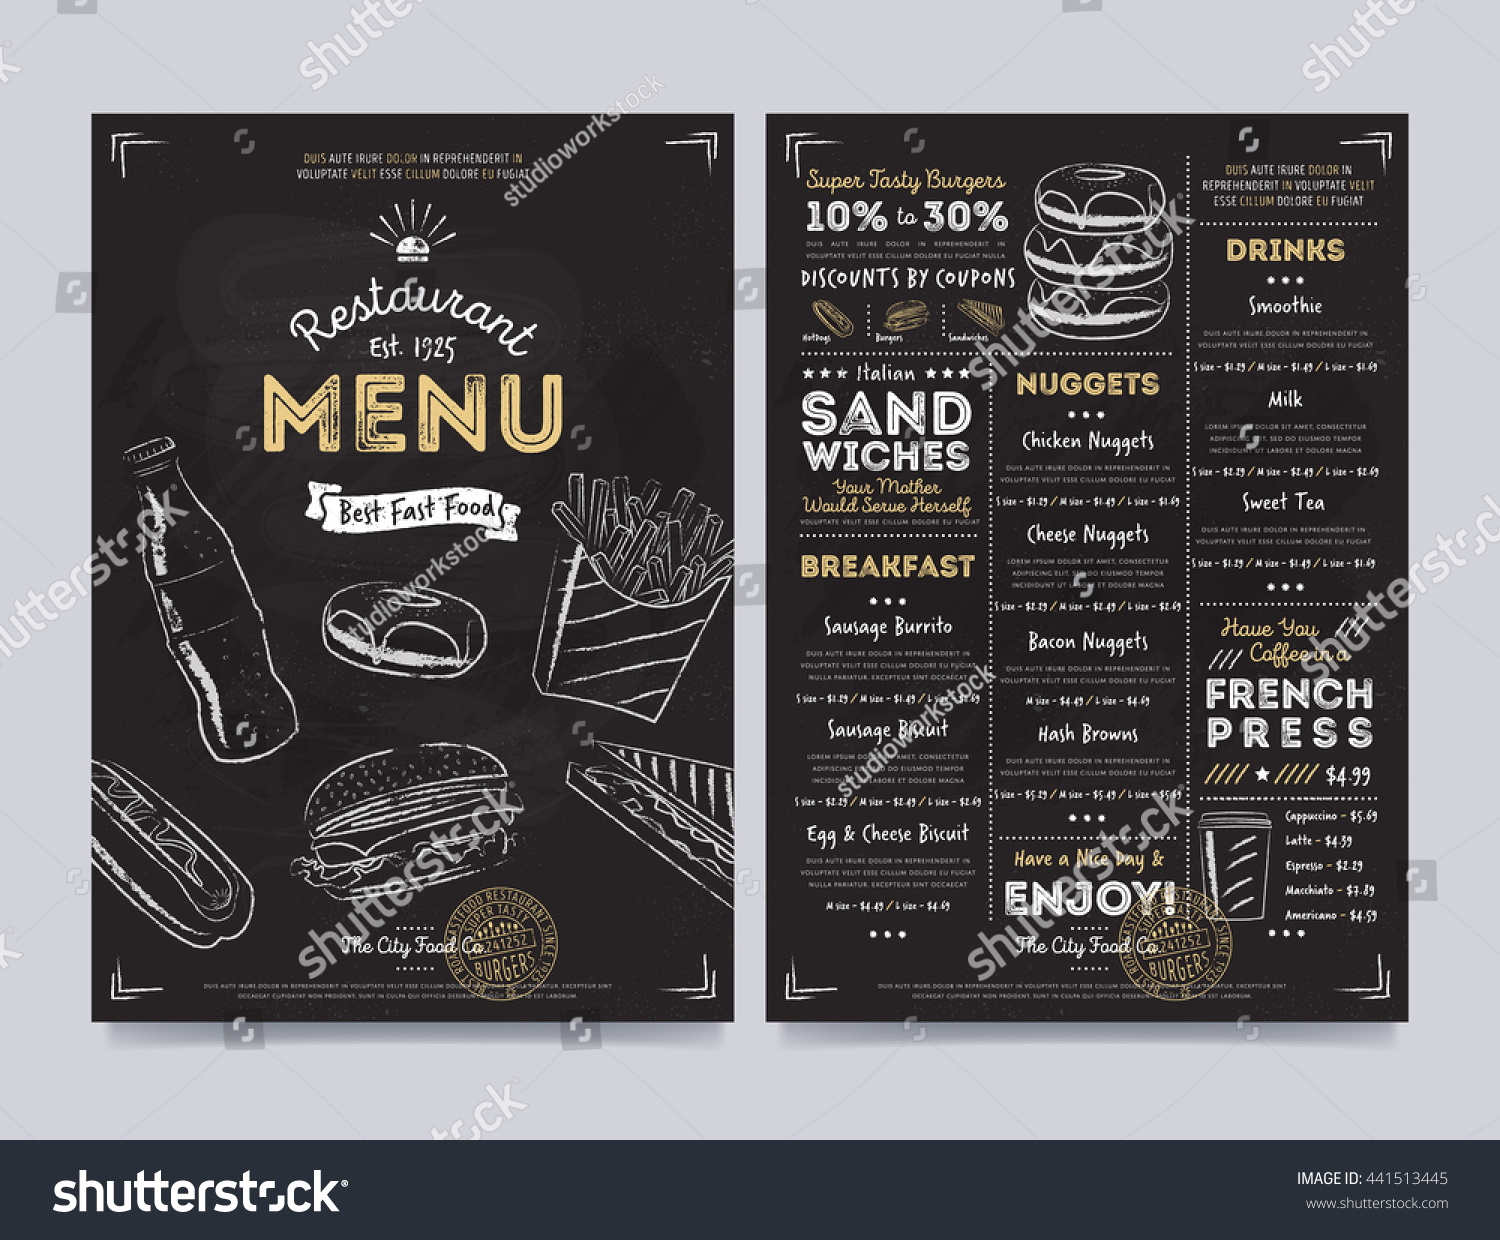 royalty-free fast food menu cover layout with… #441513445 stock